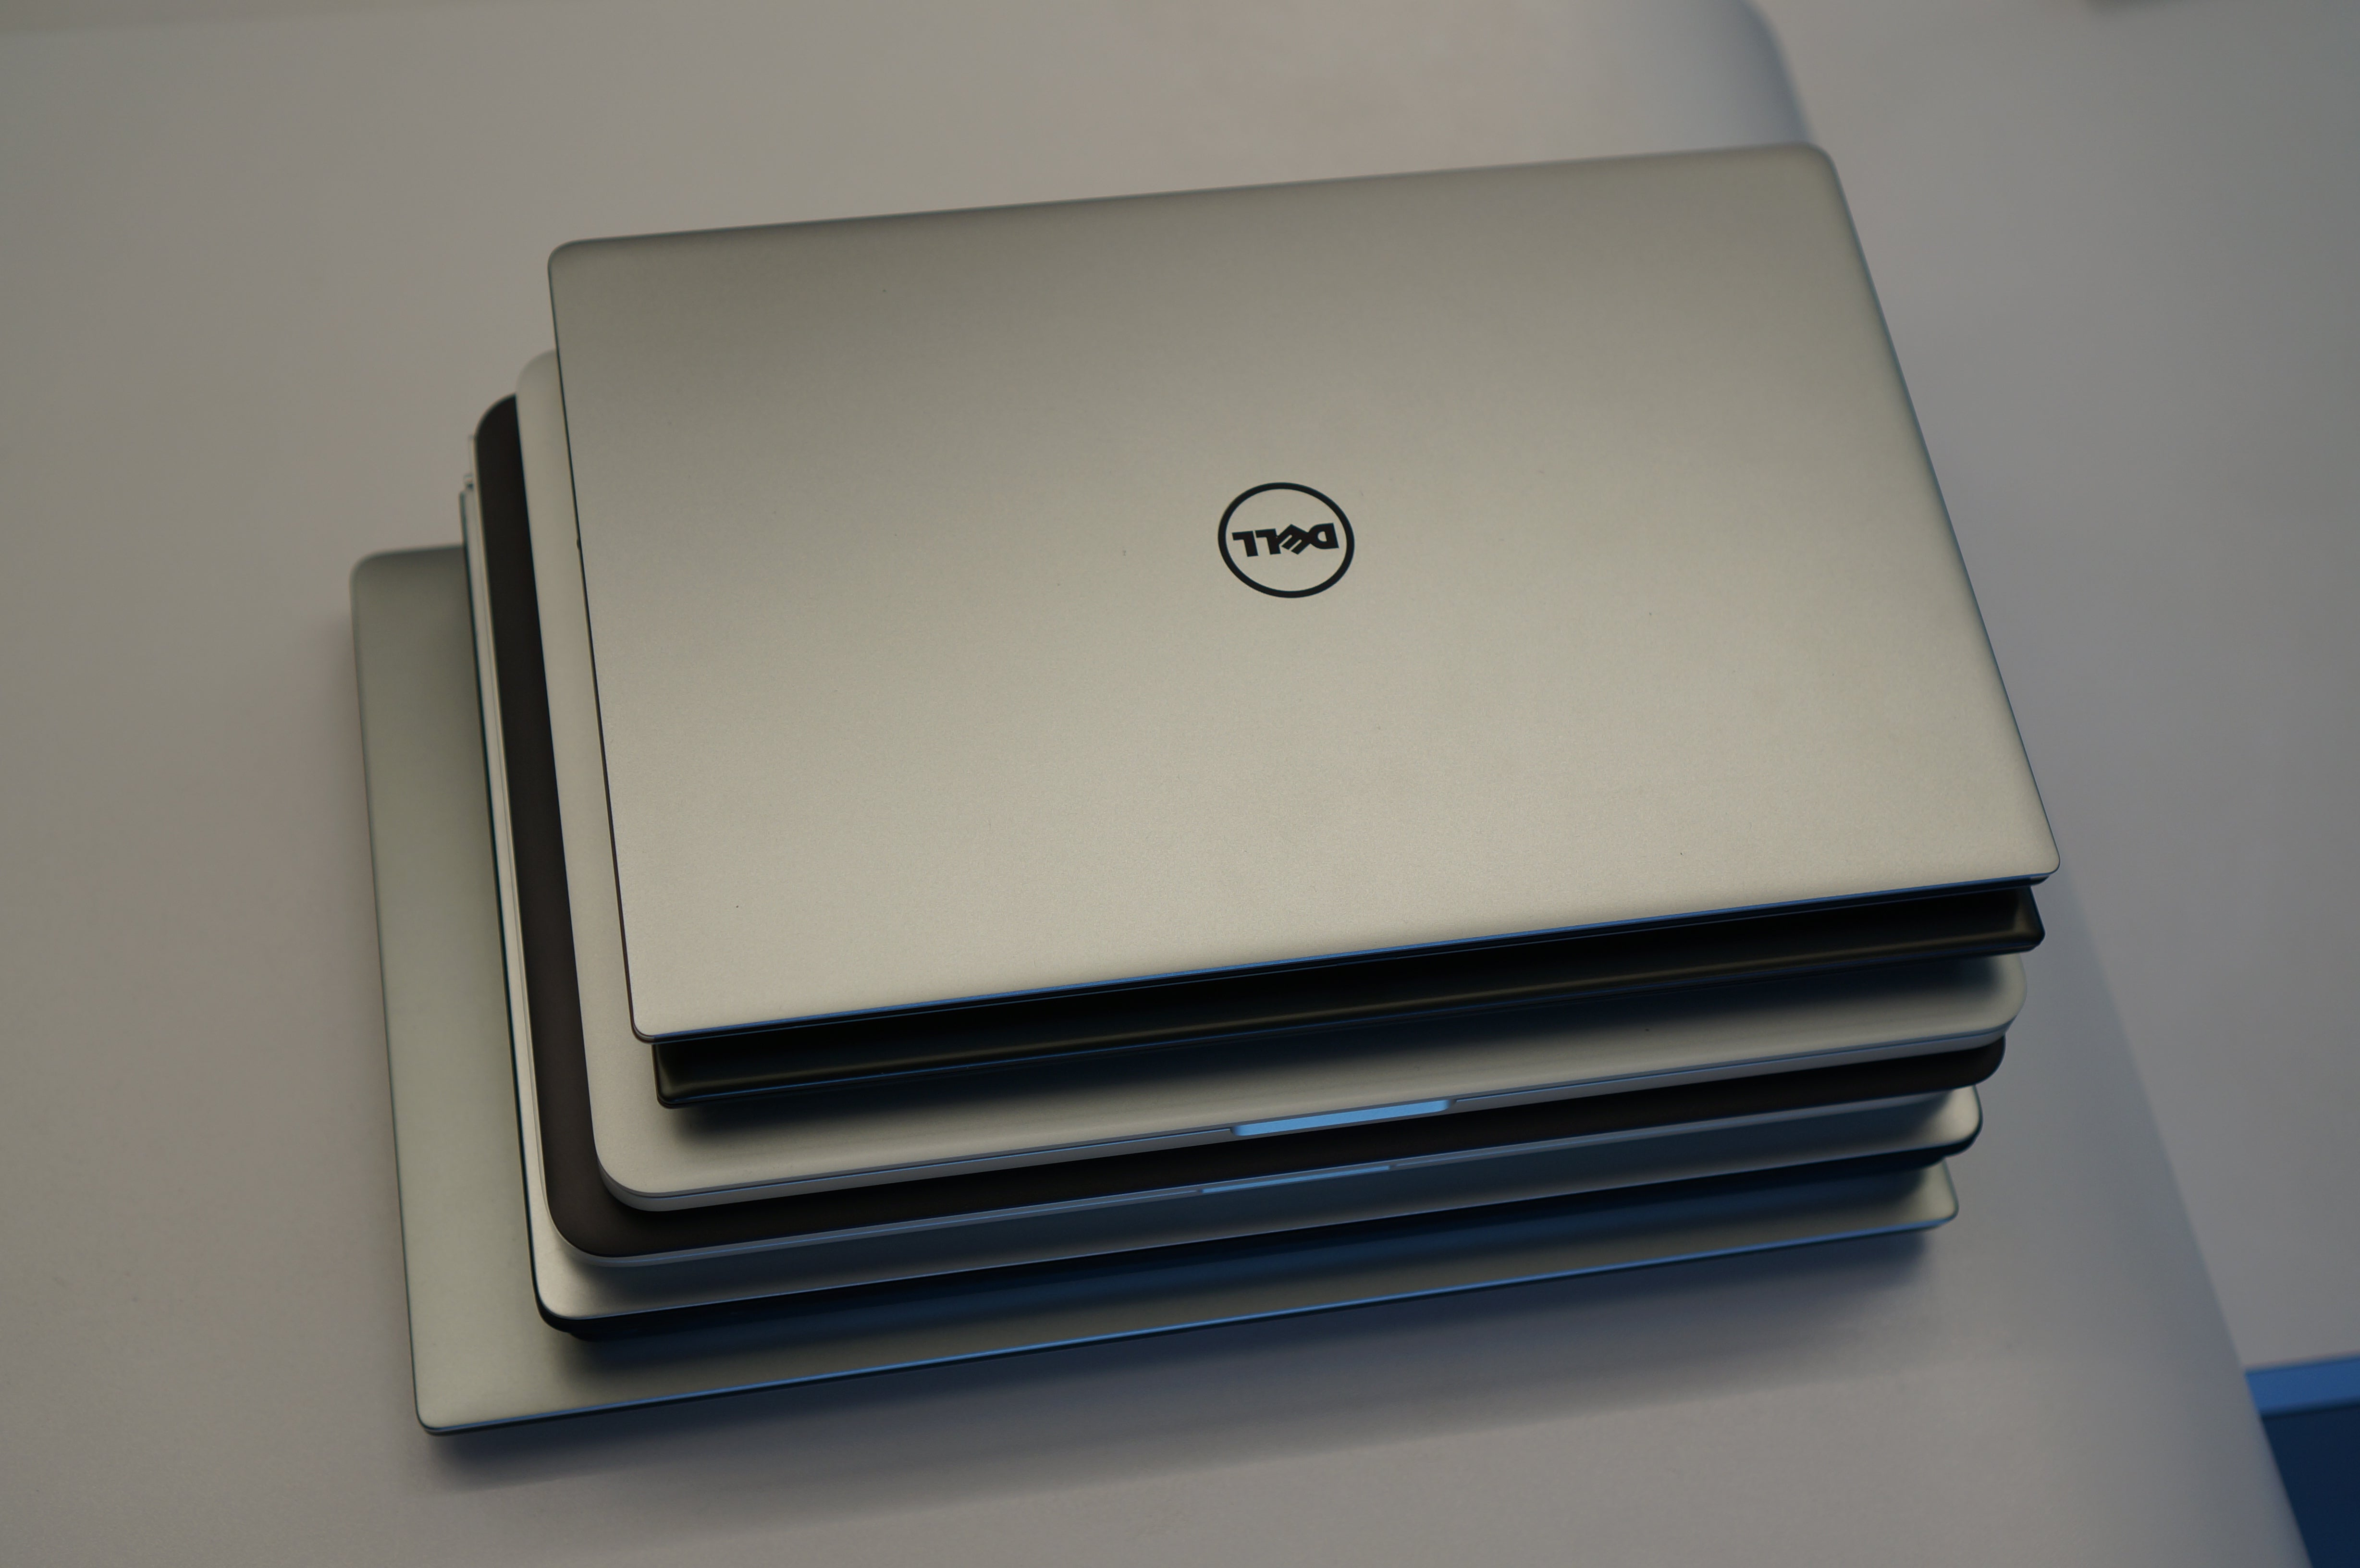 Dell Skylake Xps 13 Review The Best Ultrabook Just Got